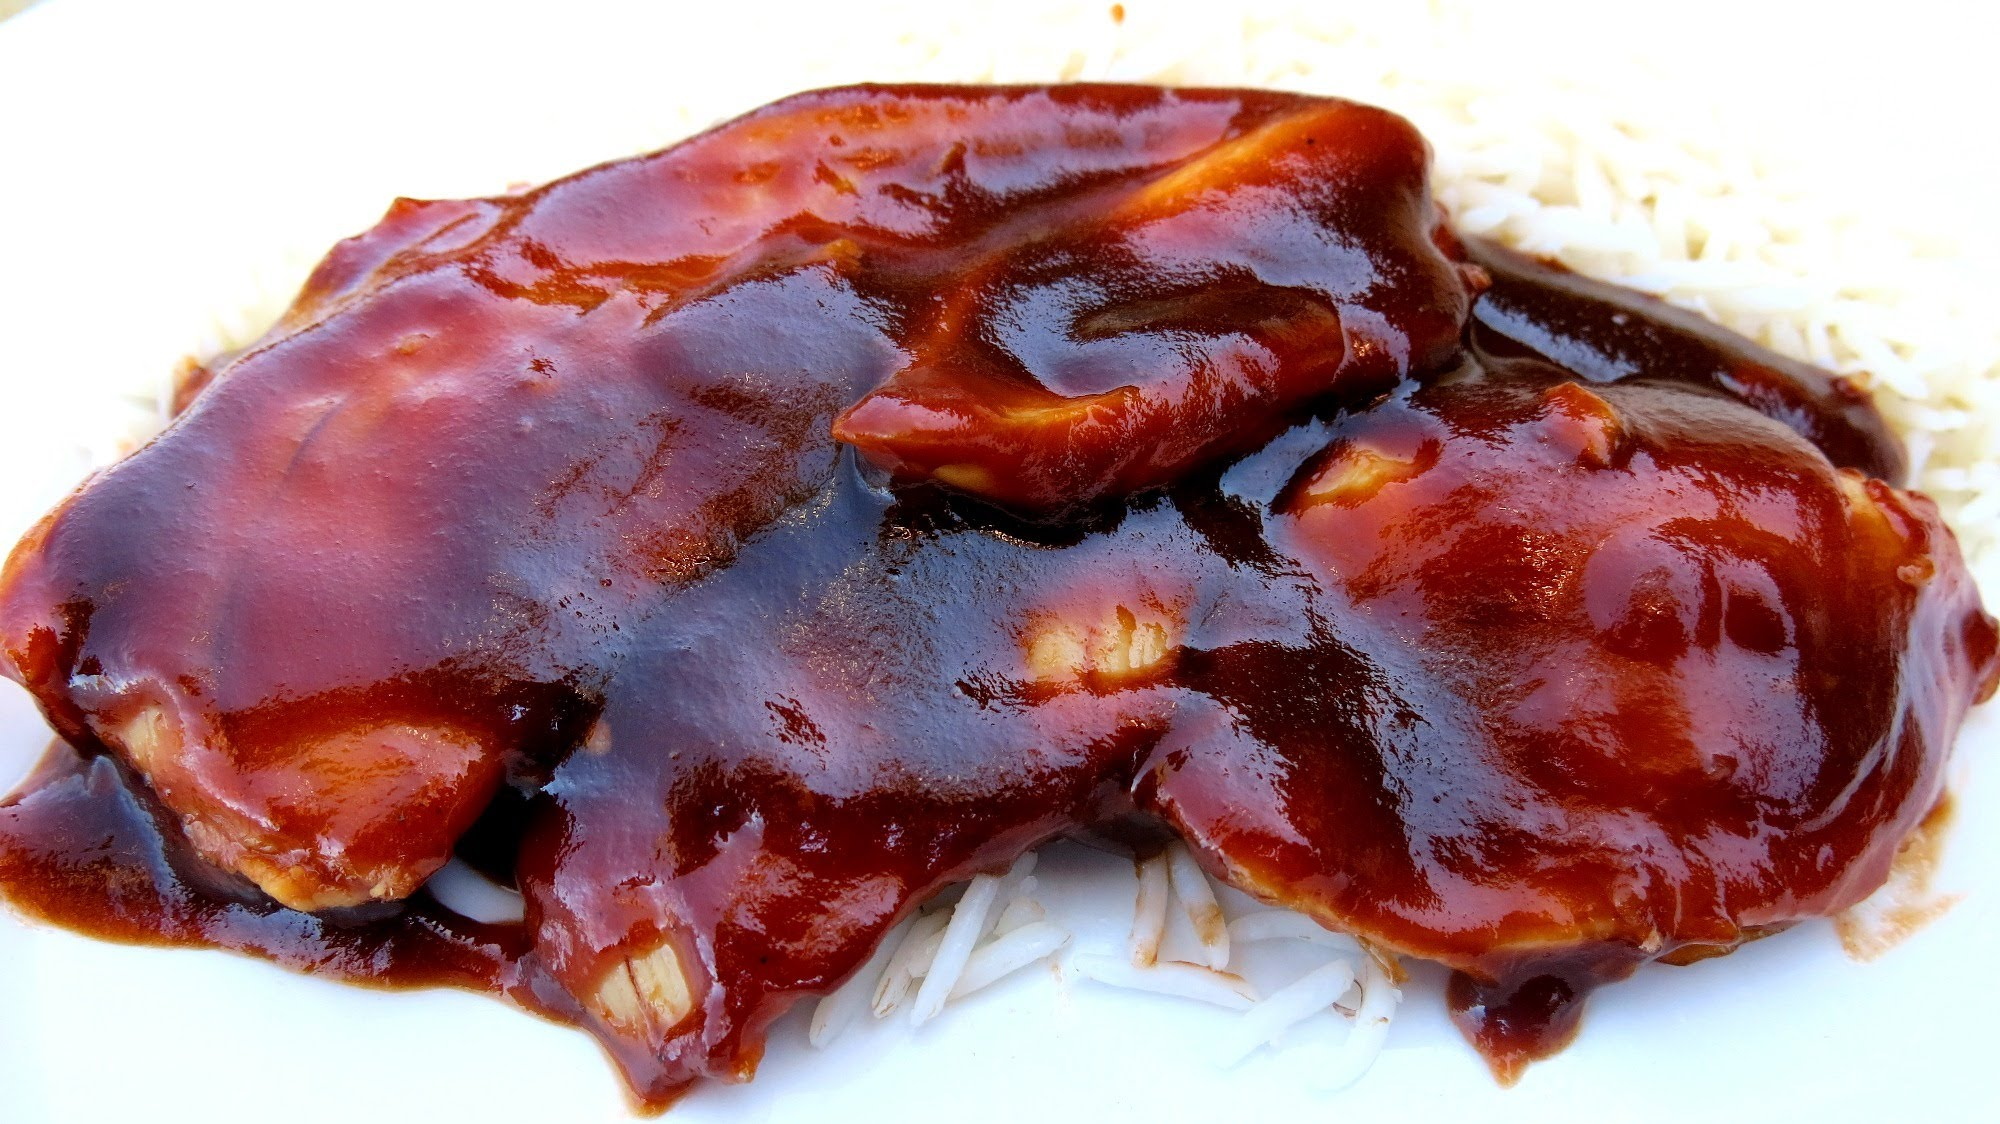 ... By Course Main Dish Poultry - Chicken Coca-cola Bbq Chicken, crockpot